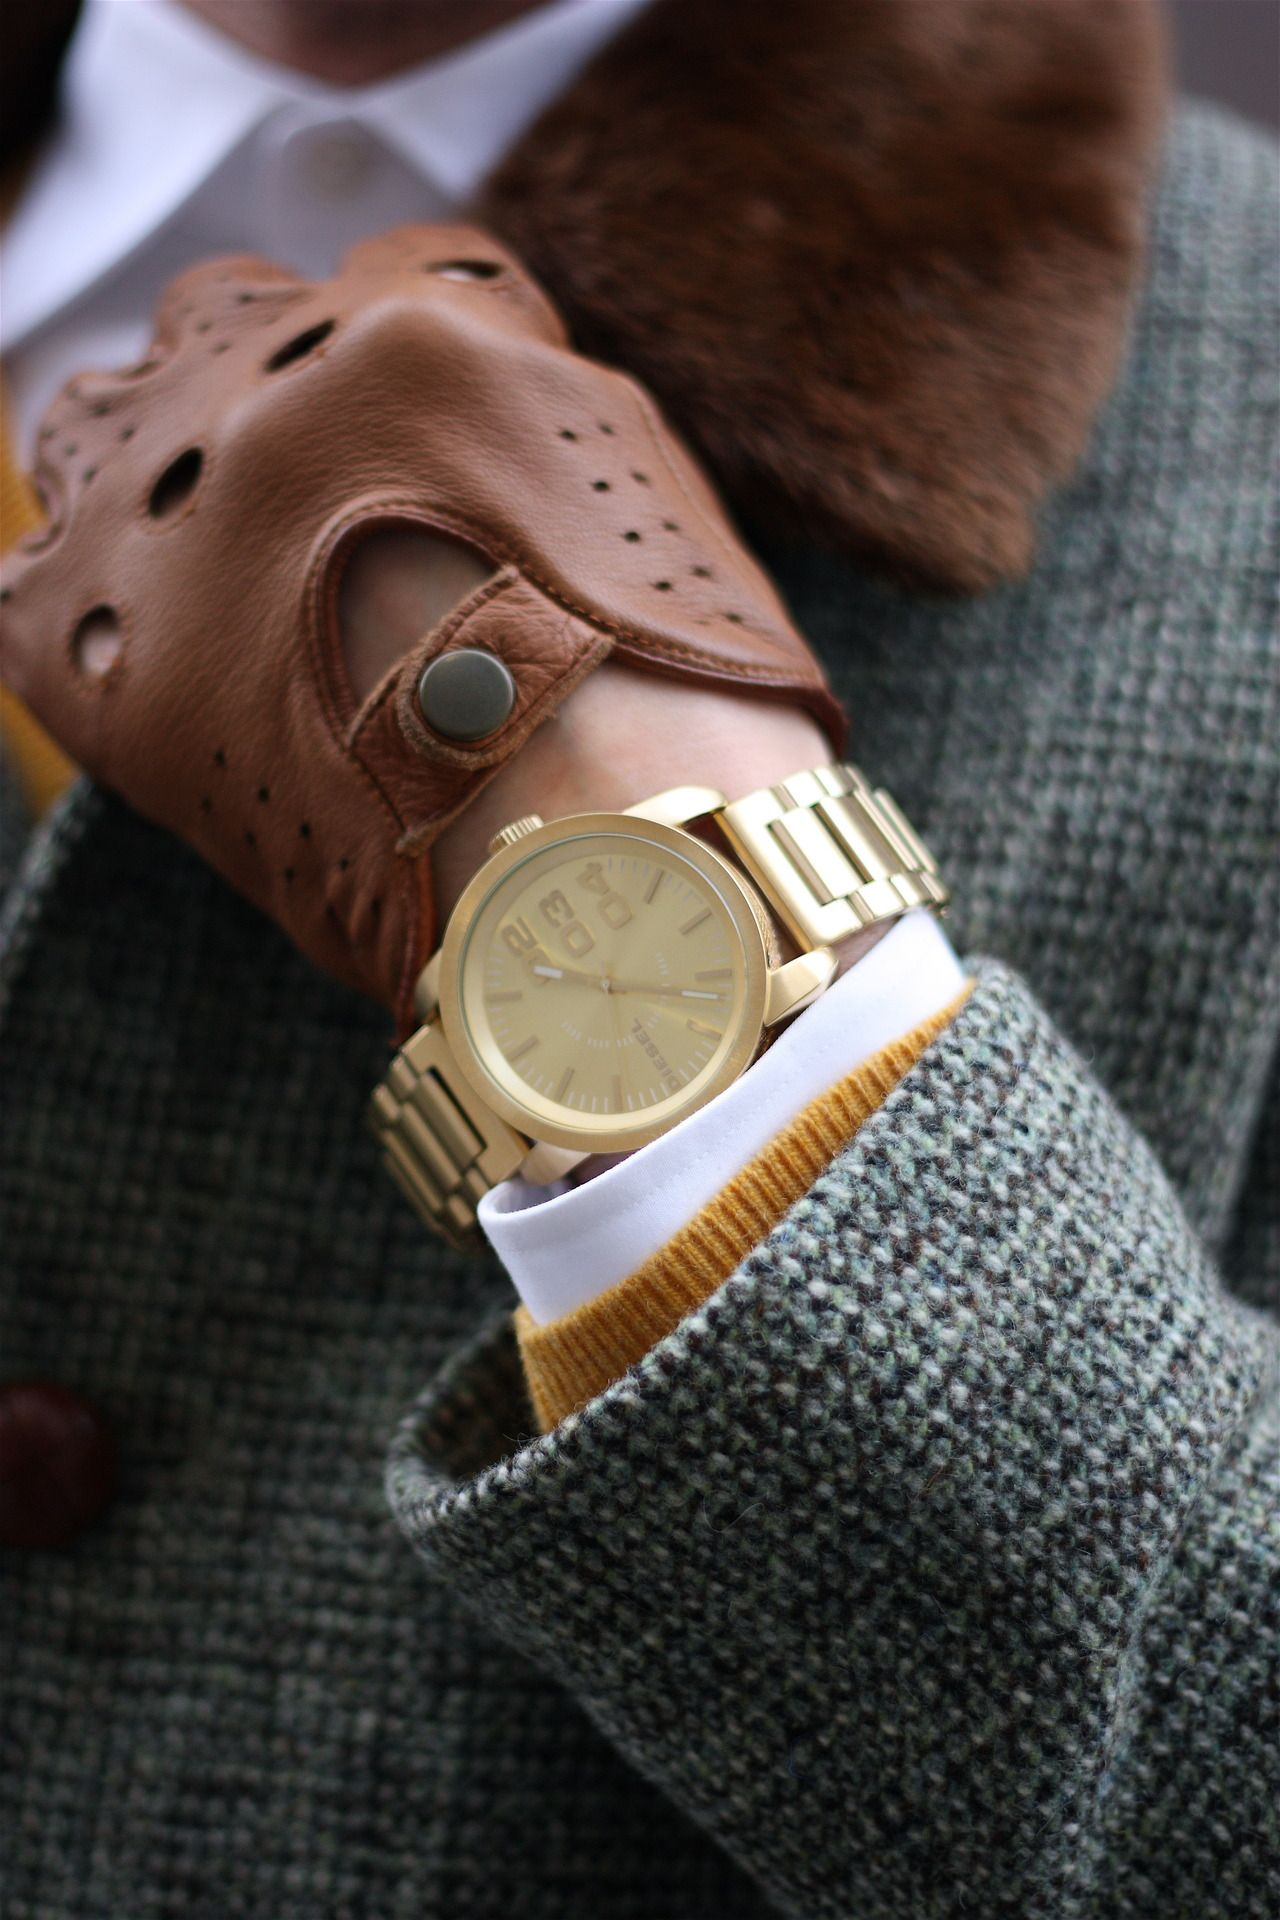 High end leather driving gloves - Gold Watch By Diesel And Nordstrom Driving Gloves